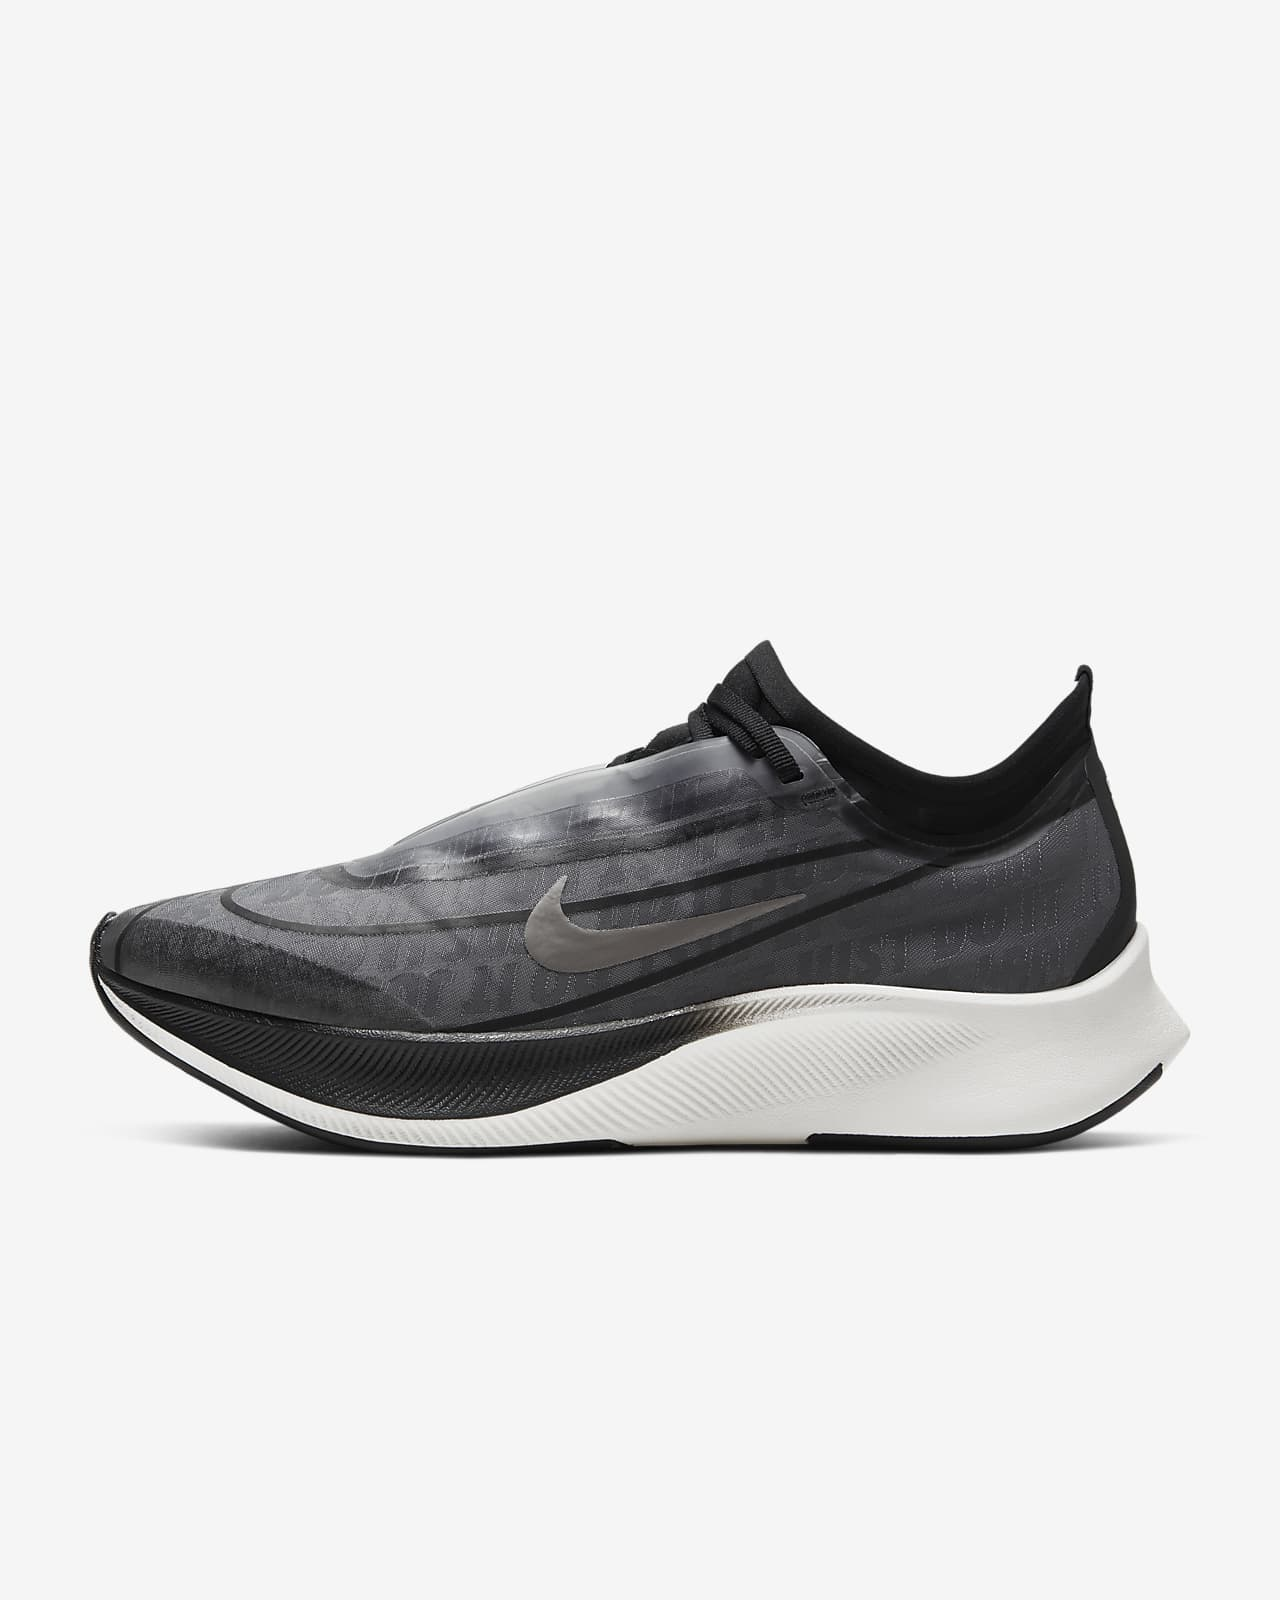 Chaussures de running sur route Nike Zoom Fly3 pour Femme